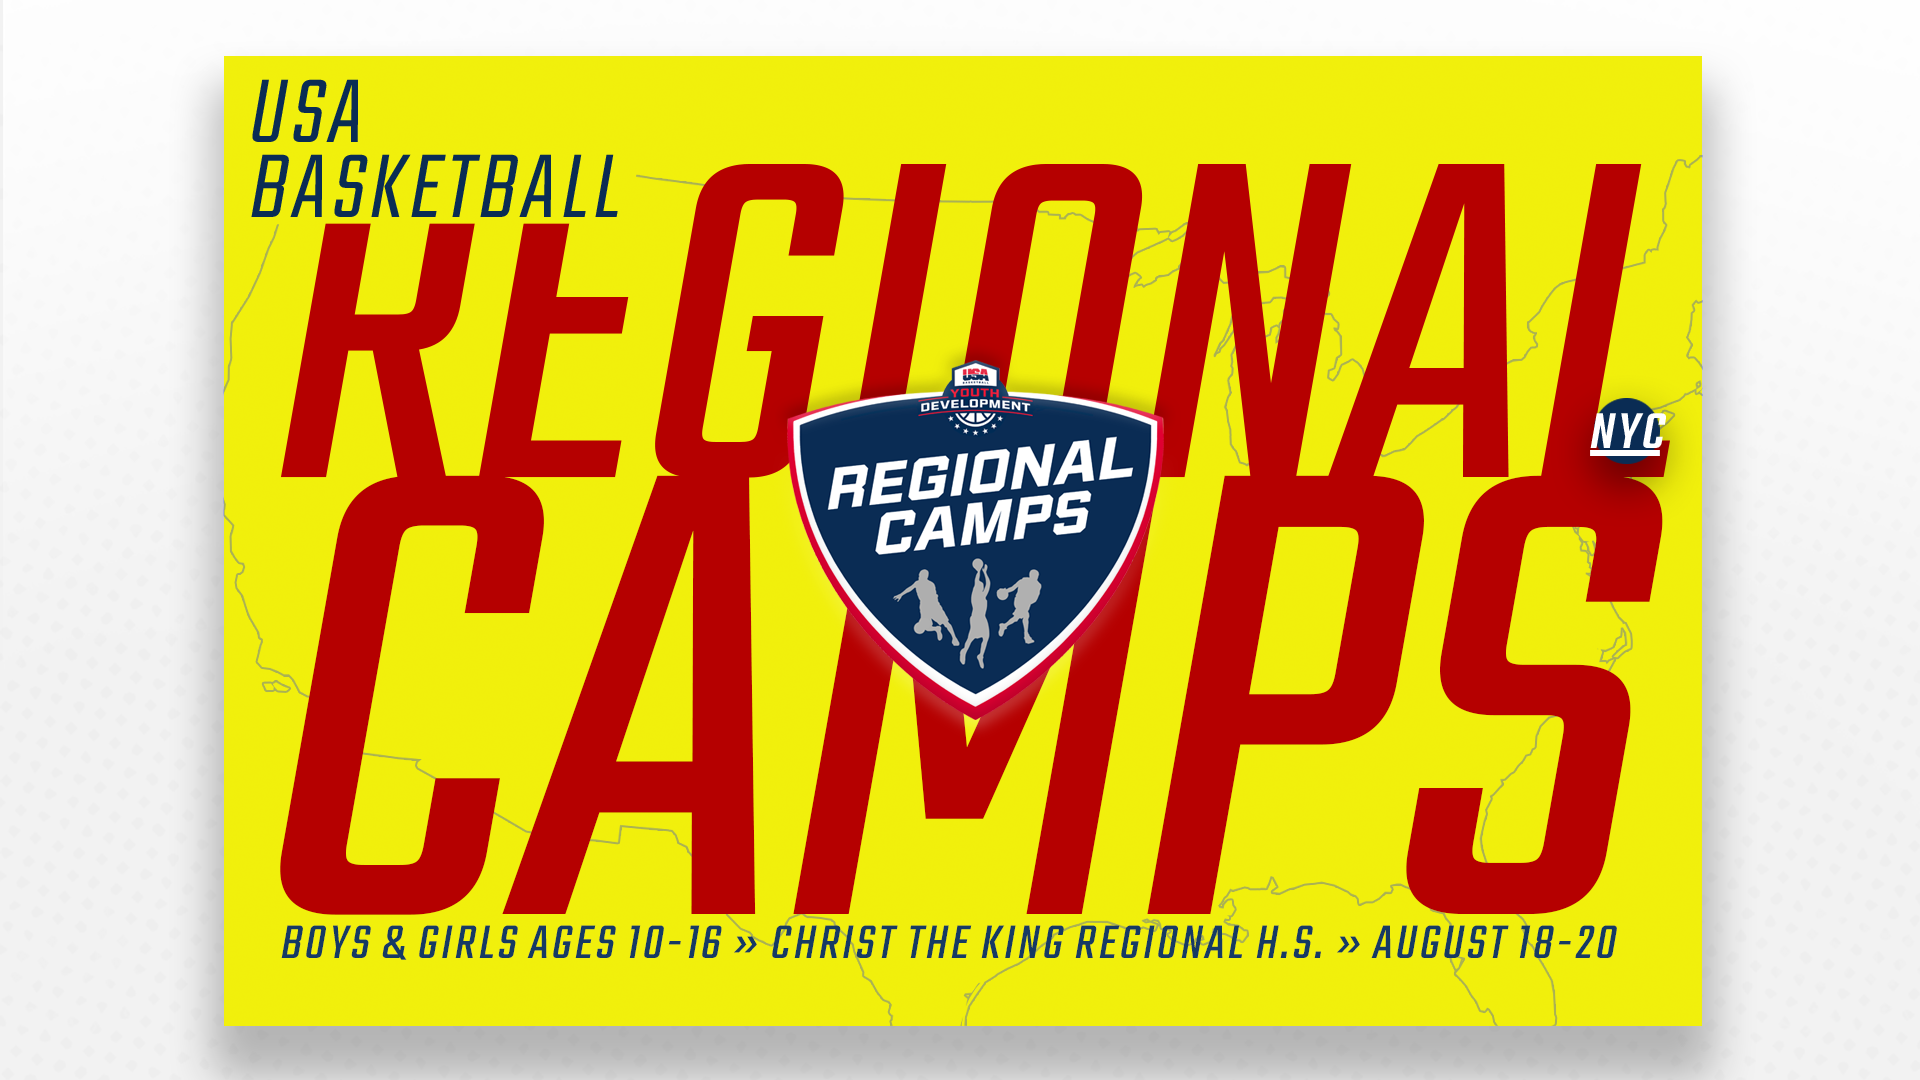 USA Basketball New York Regional Camp